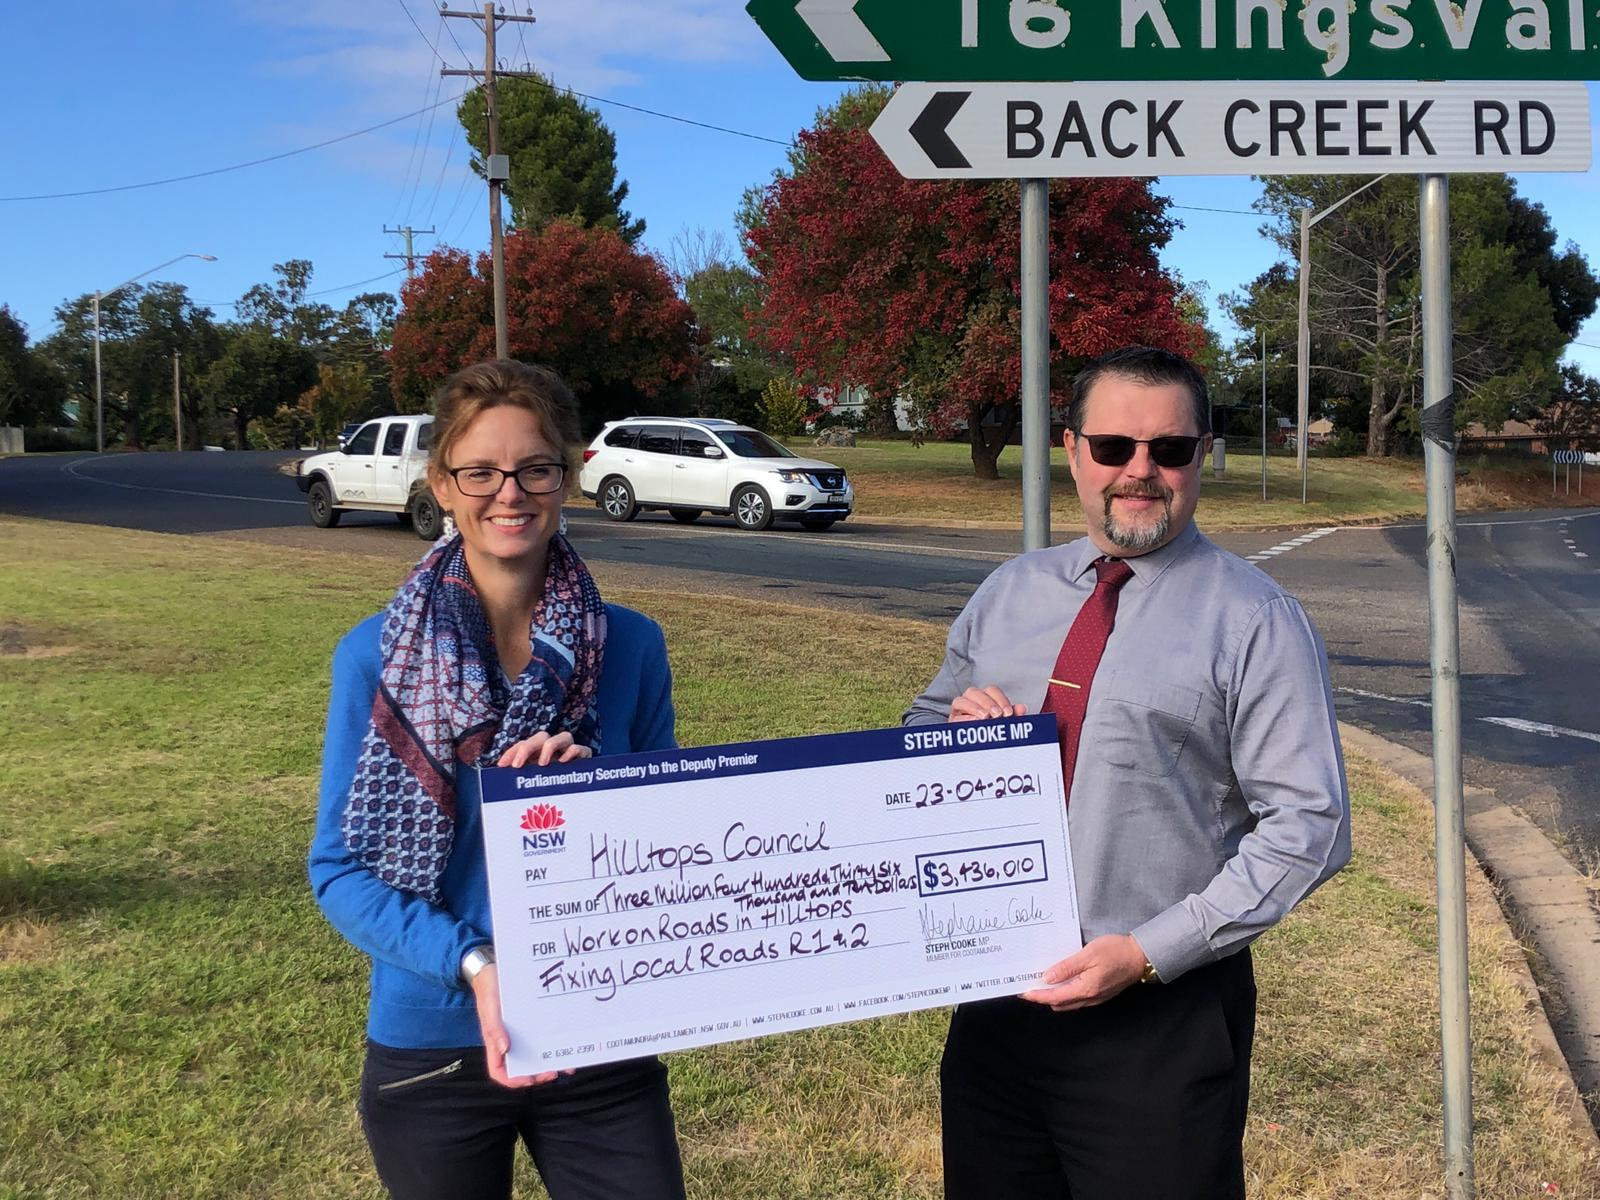 Steph Cooke MP and Anthony O'Reilly stand under a sign to Back Creek Road.